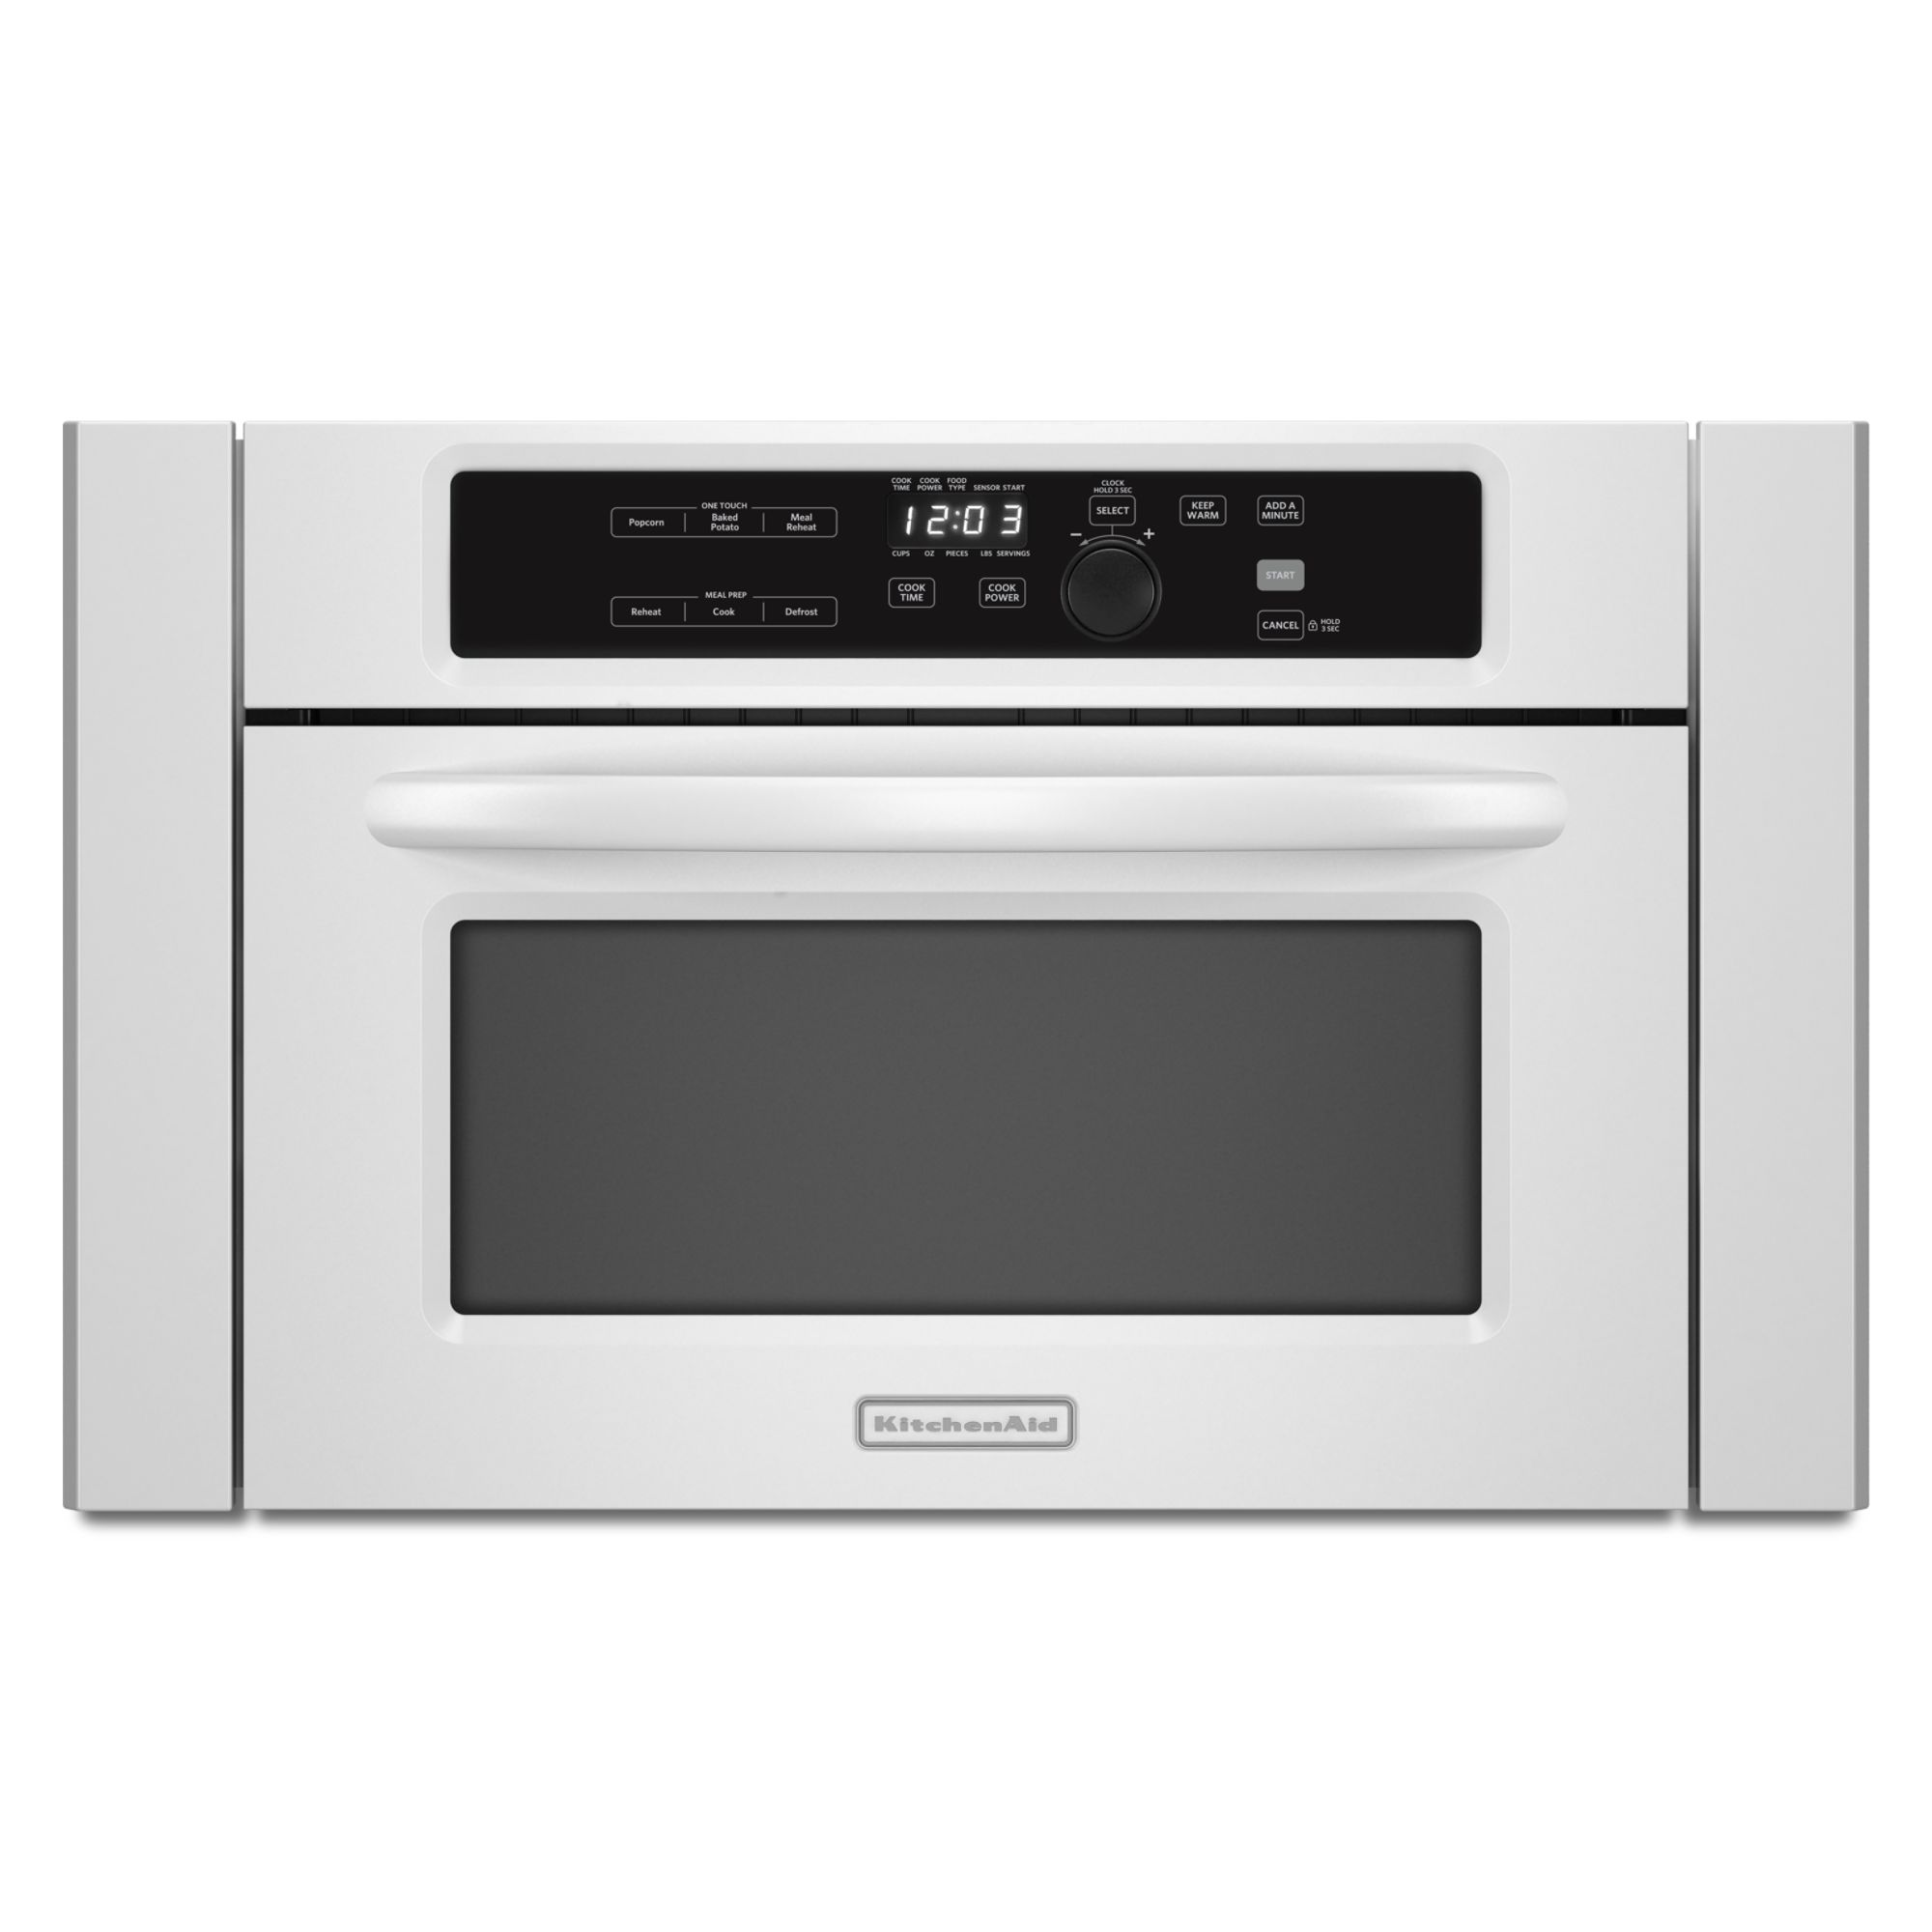 kitchen aid microwaves corner cabinet shelf kitchenaid kbms1454bwh 24 quot built in microwave oven